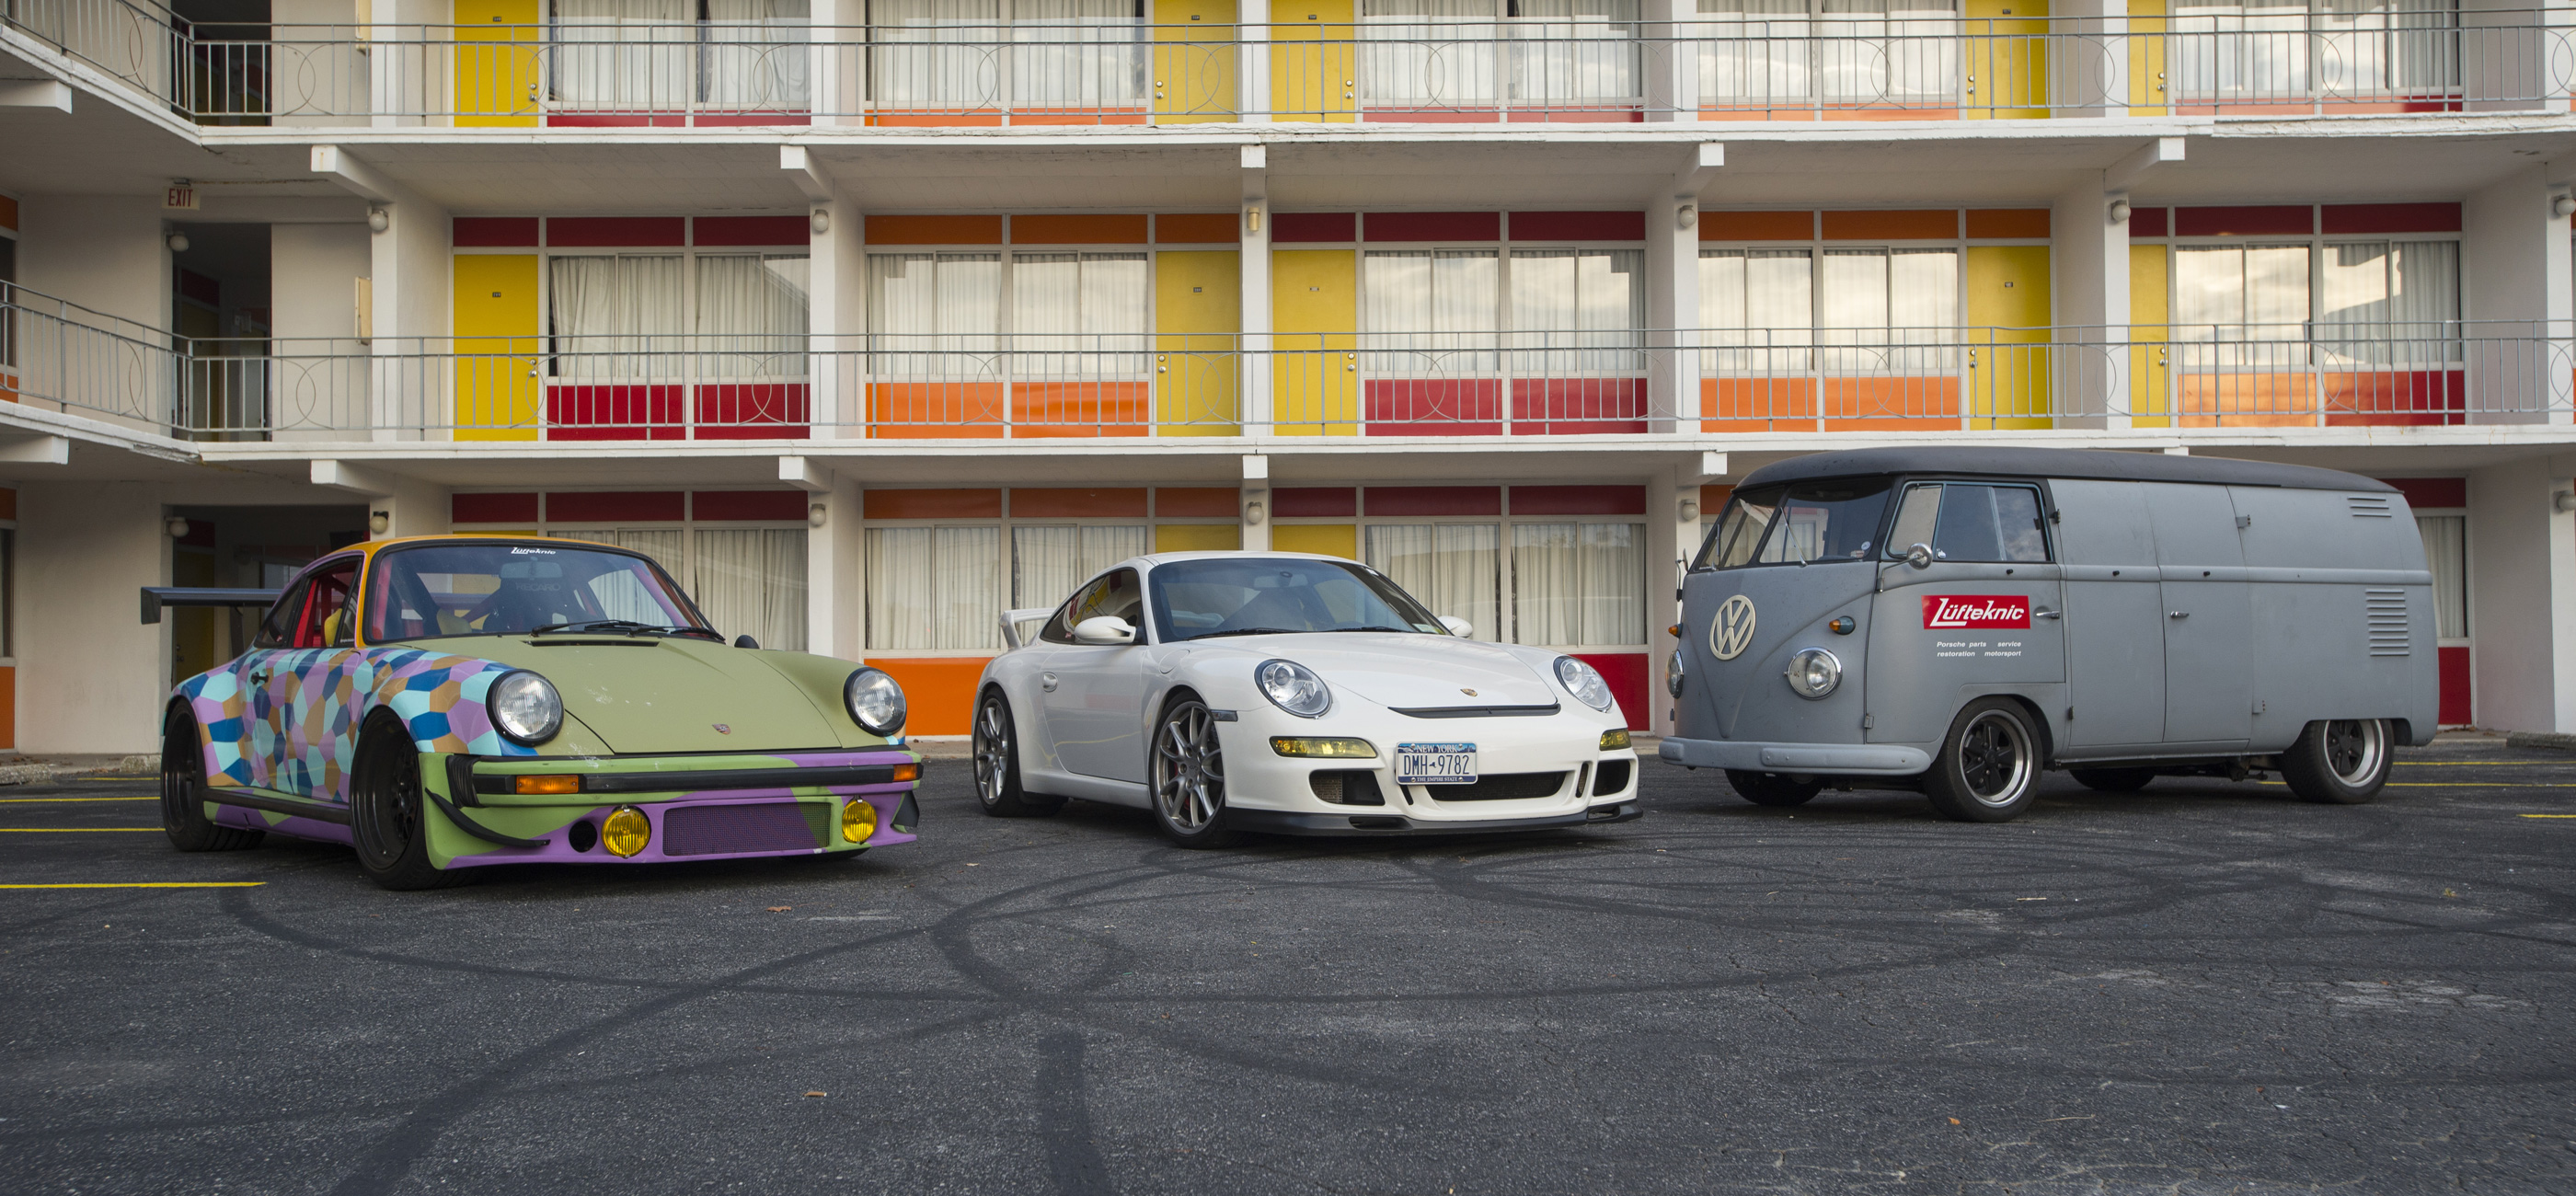 Projectstuka, a 997 GT3 and the Porschebus in front of a colorful hotel.